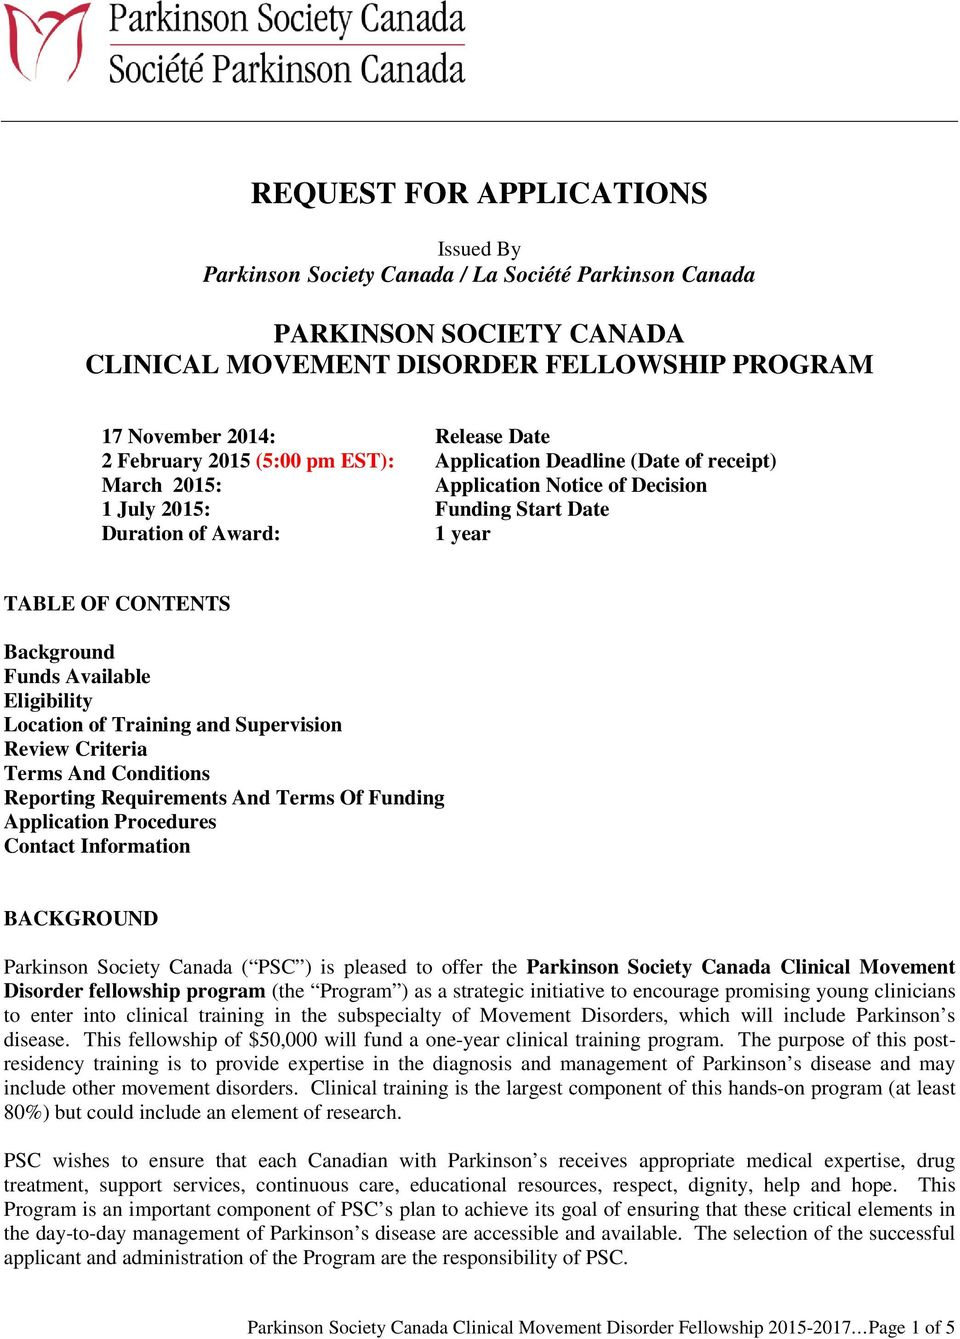 REQUEST FOR APPLICATIONS - PDF